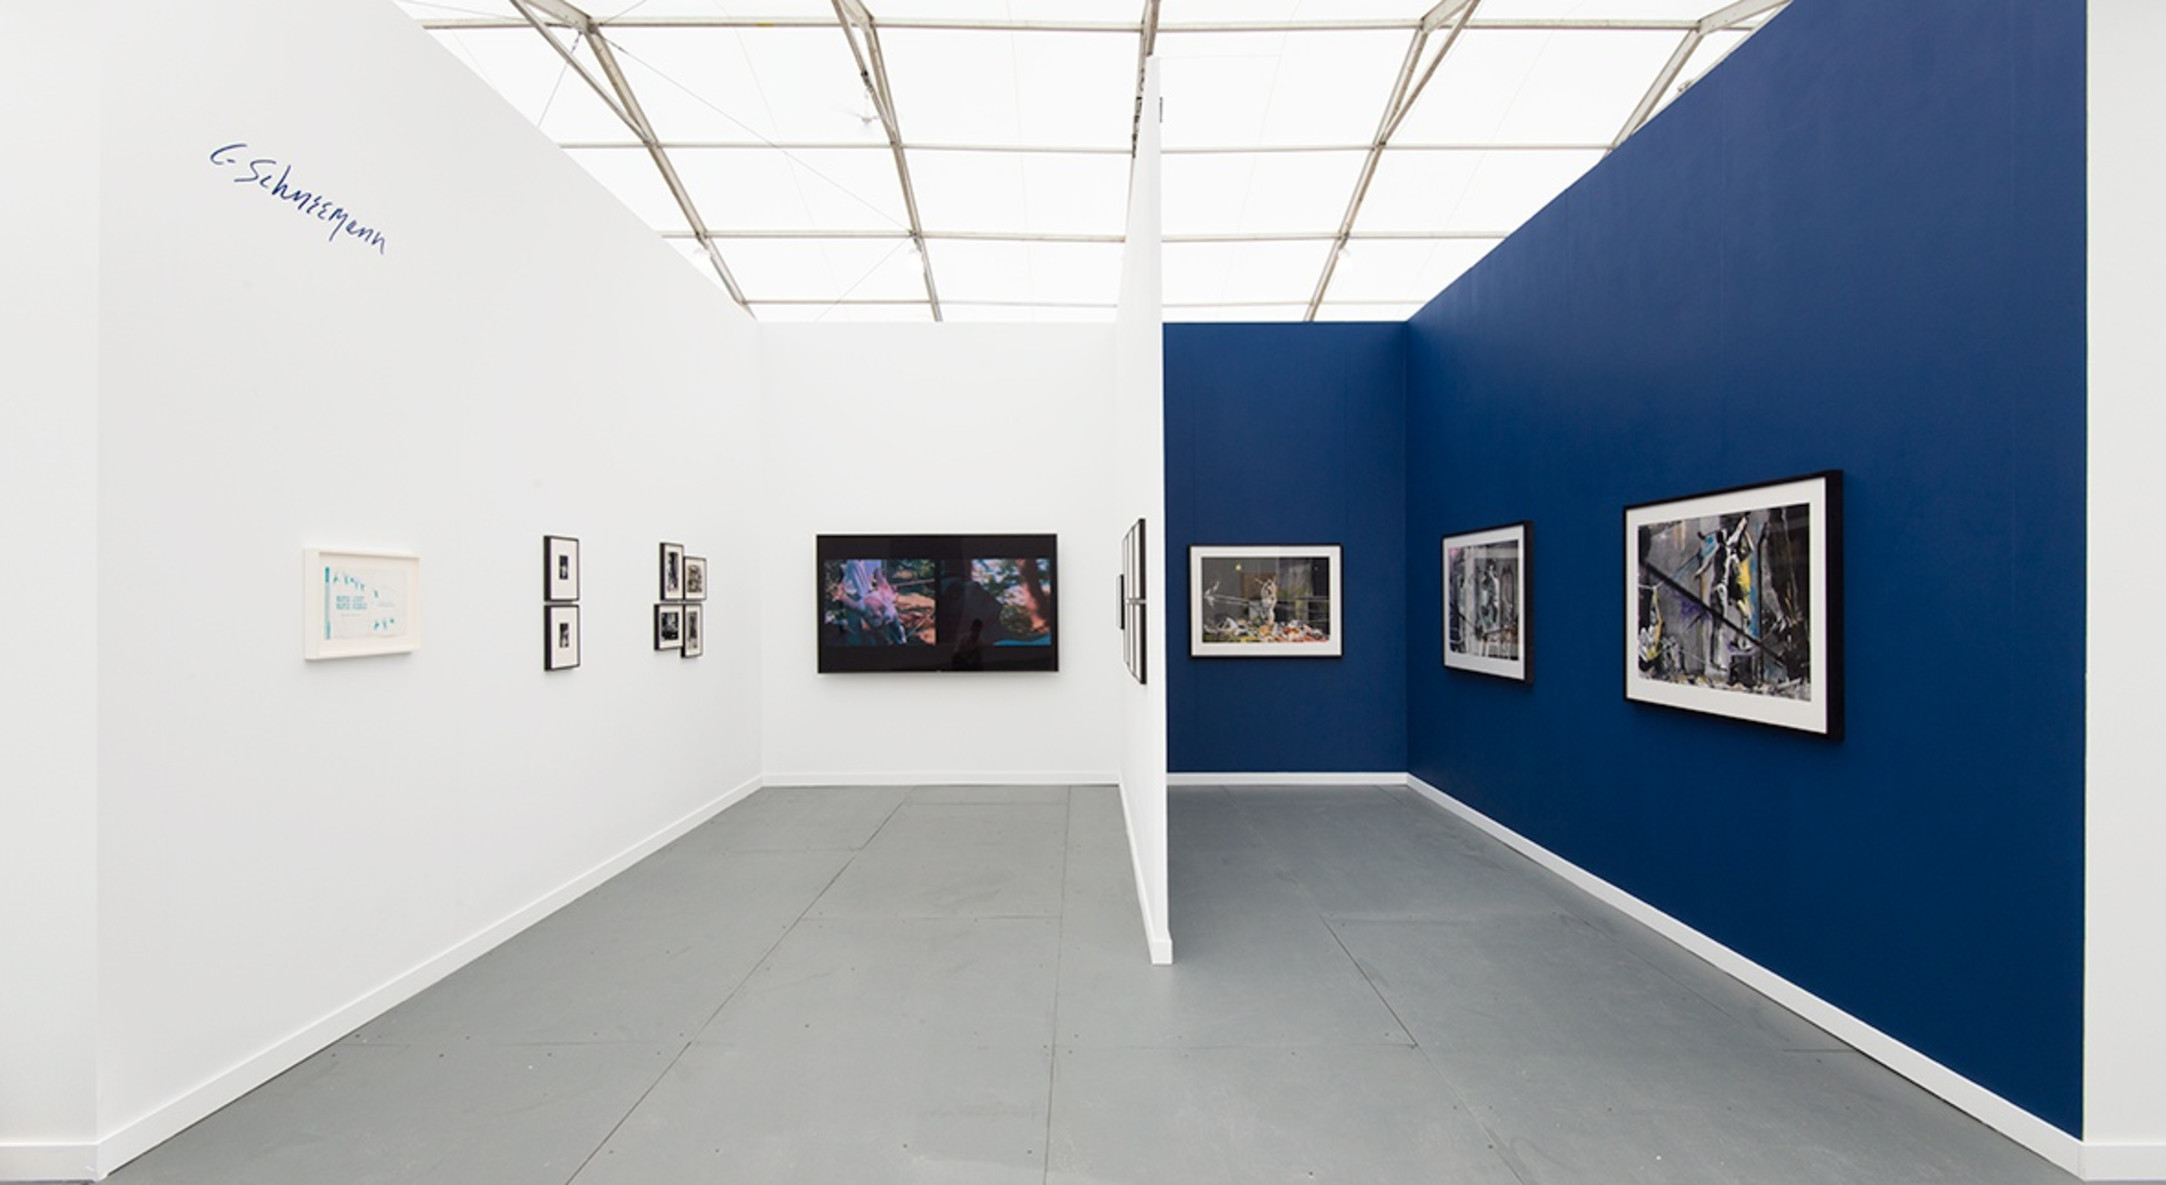 Installation view of Carolee Schneemann at Hales Gallery Booth (Spotlight) at Frieze New York 2015